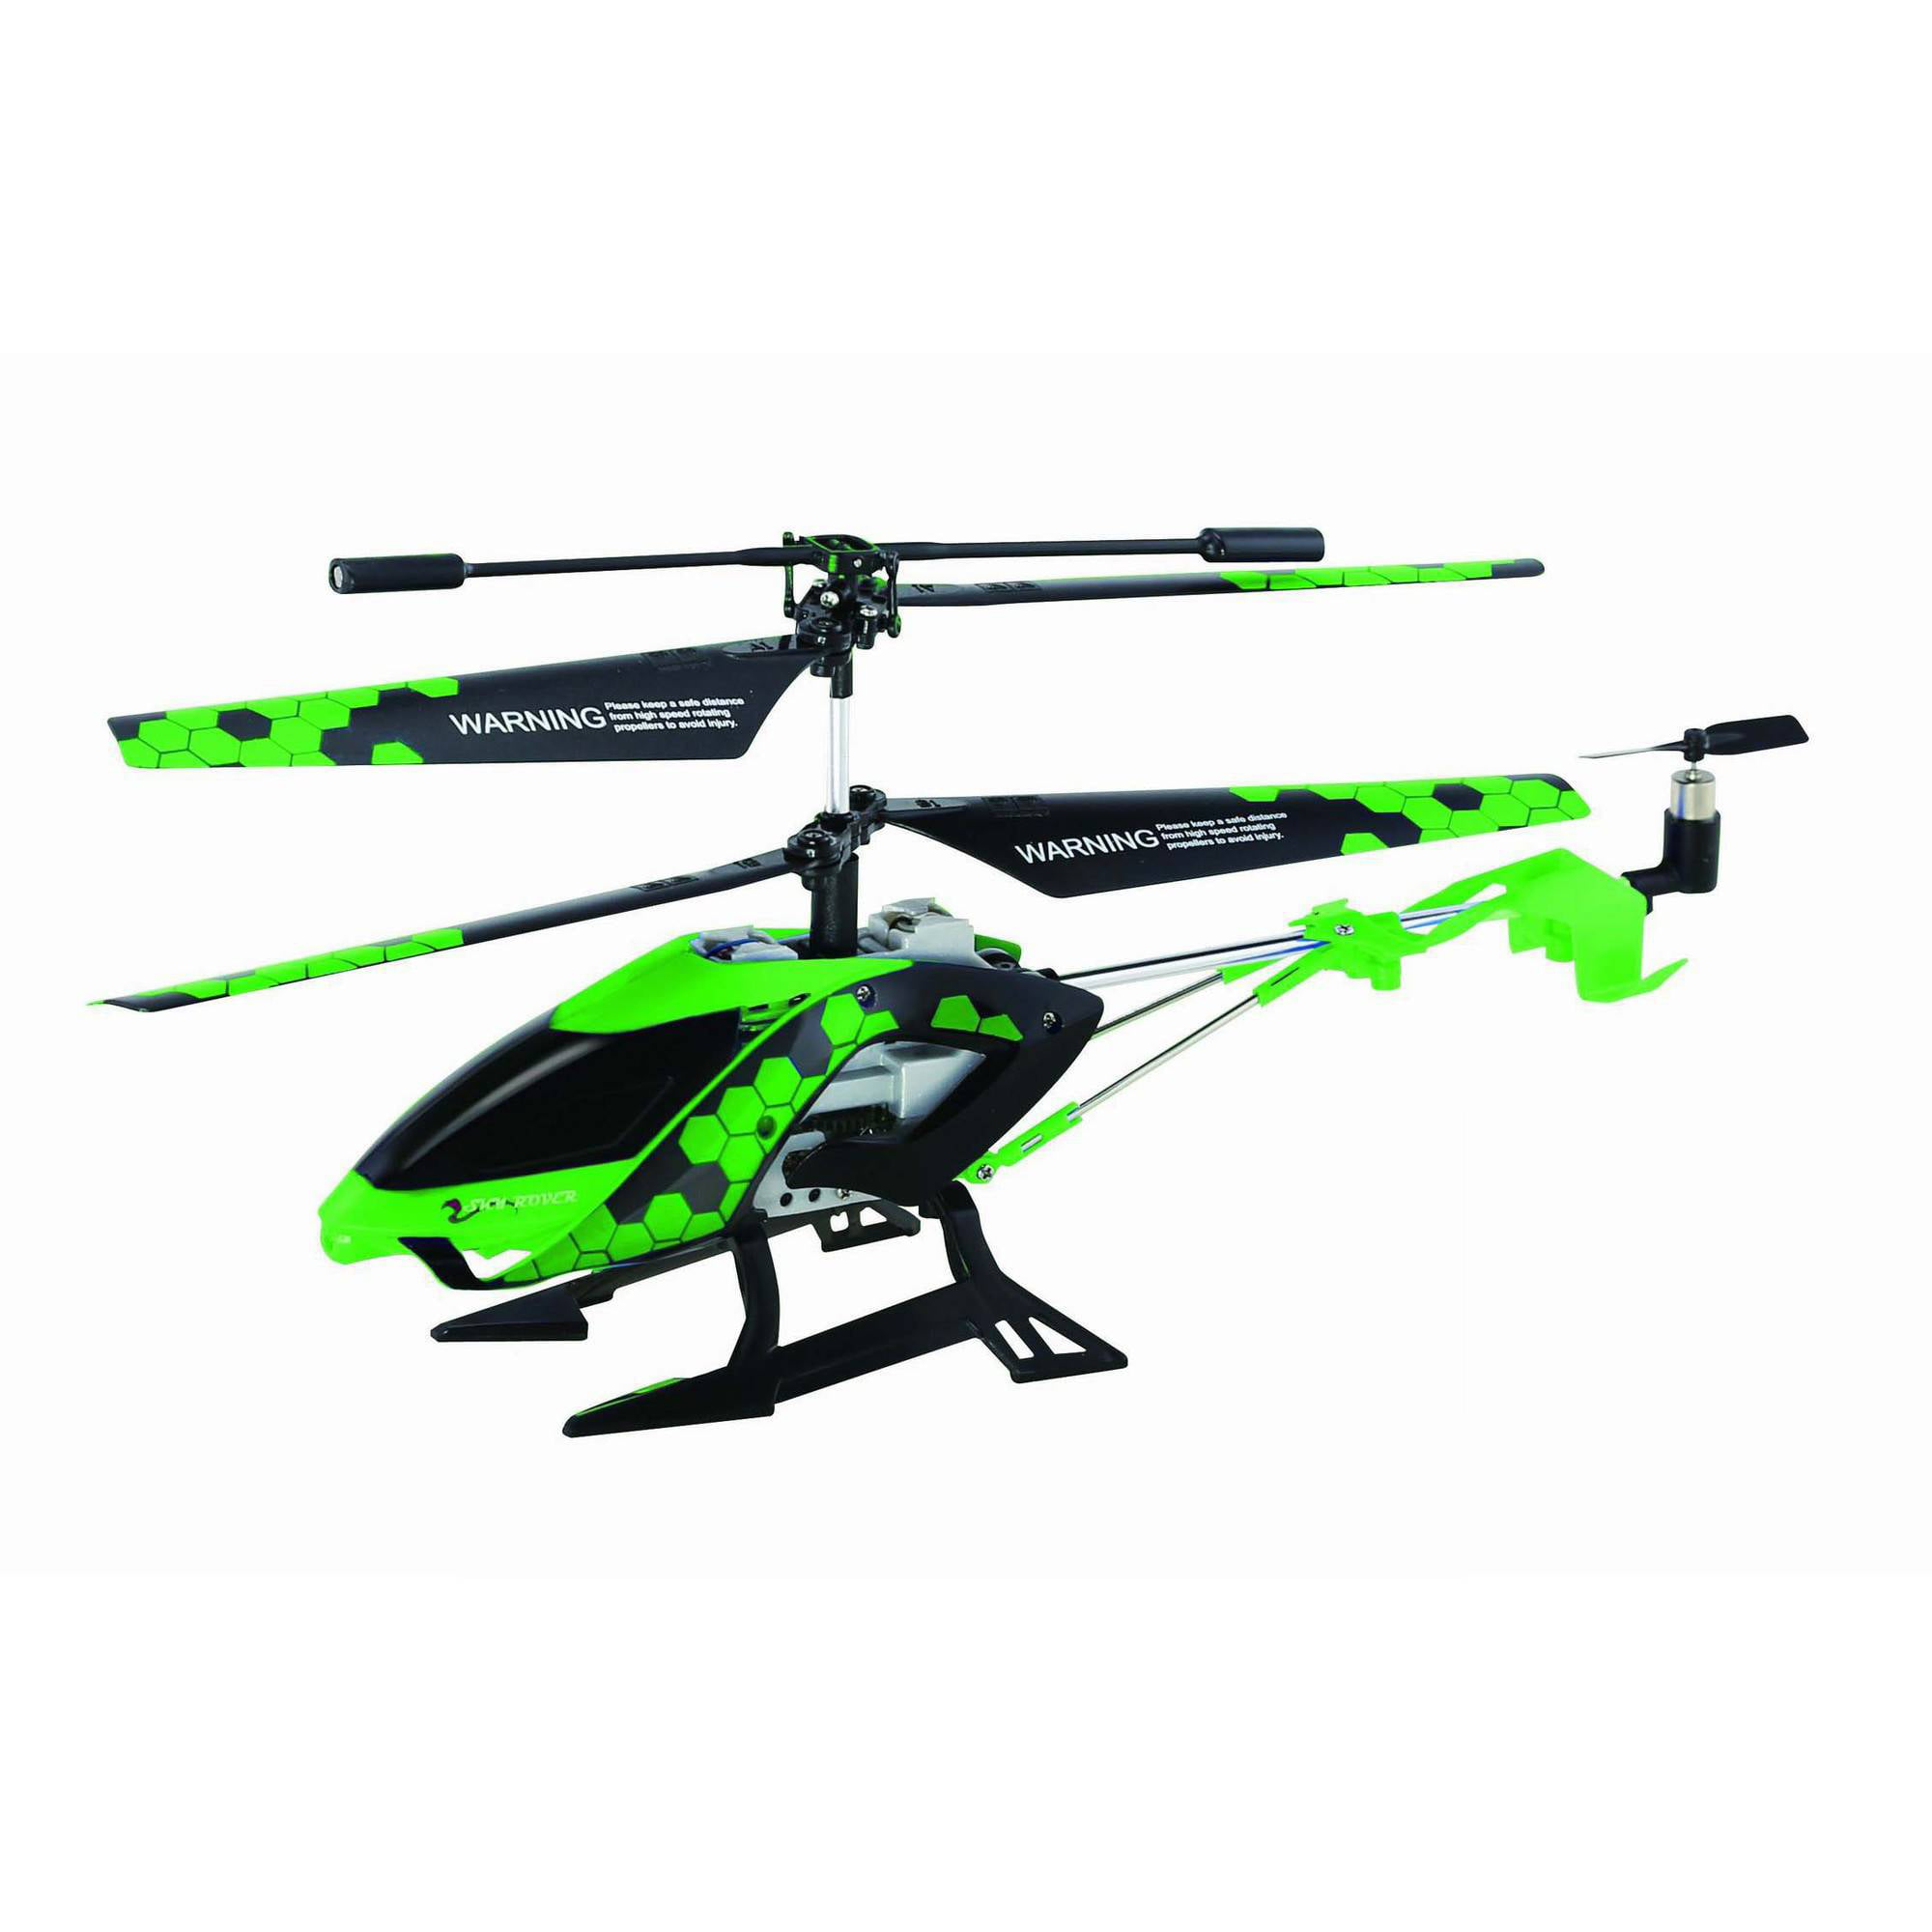 Stalker Auldey Sky Rover Indoor Helicopter, Green by